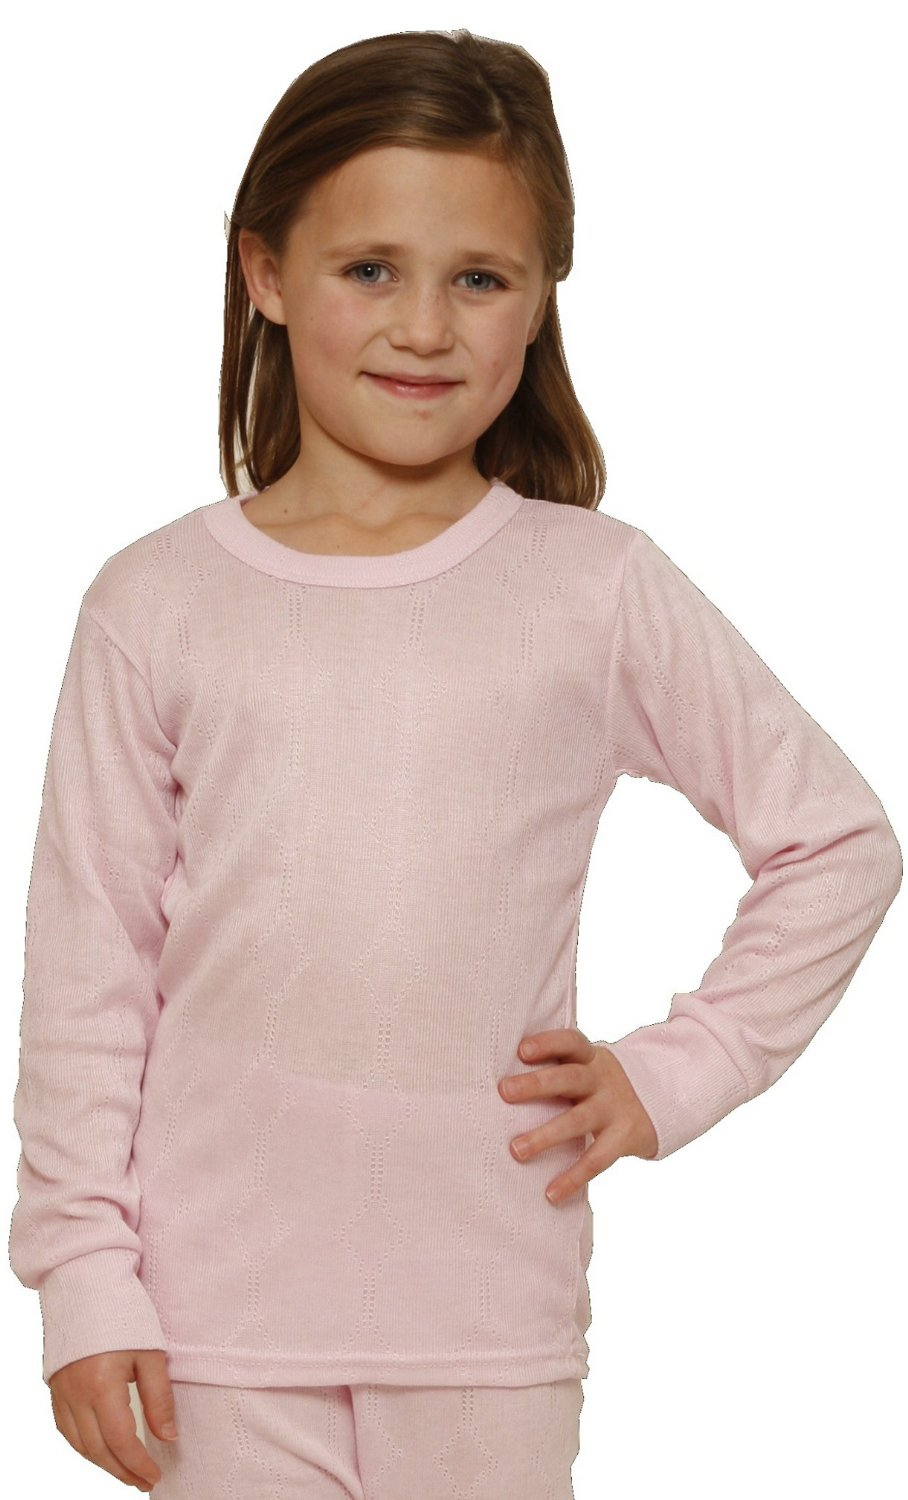 Octave® Girls Thermal Underwear Fancy Knit Long-Sleeved Vest